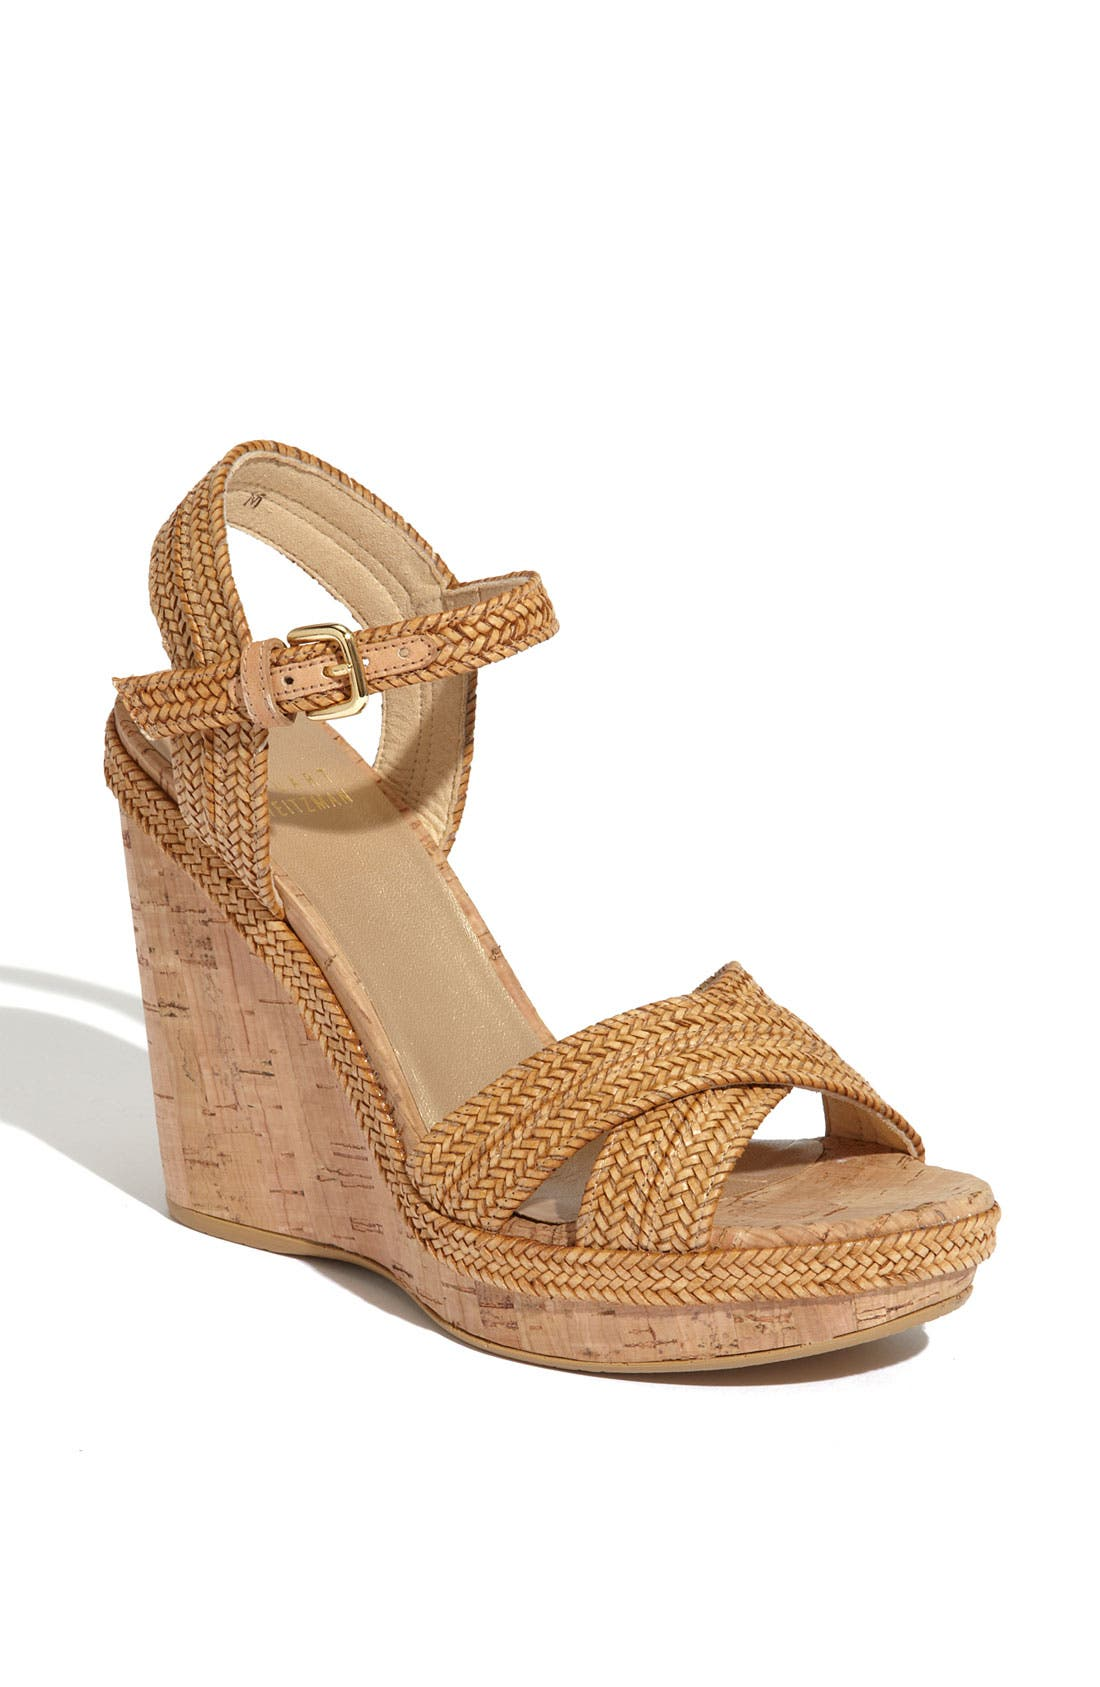 Alternate Image 1 Selected - Stuart Weitzman 'Minx' Espadrille